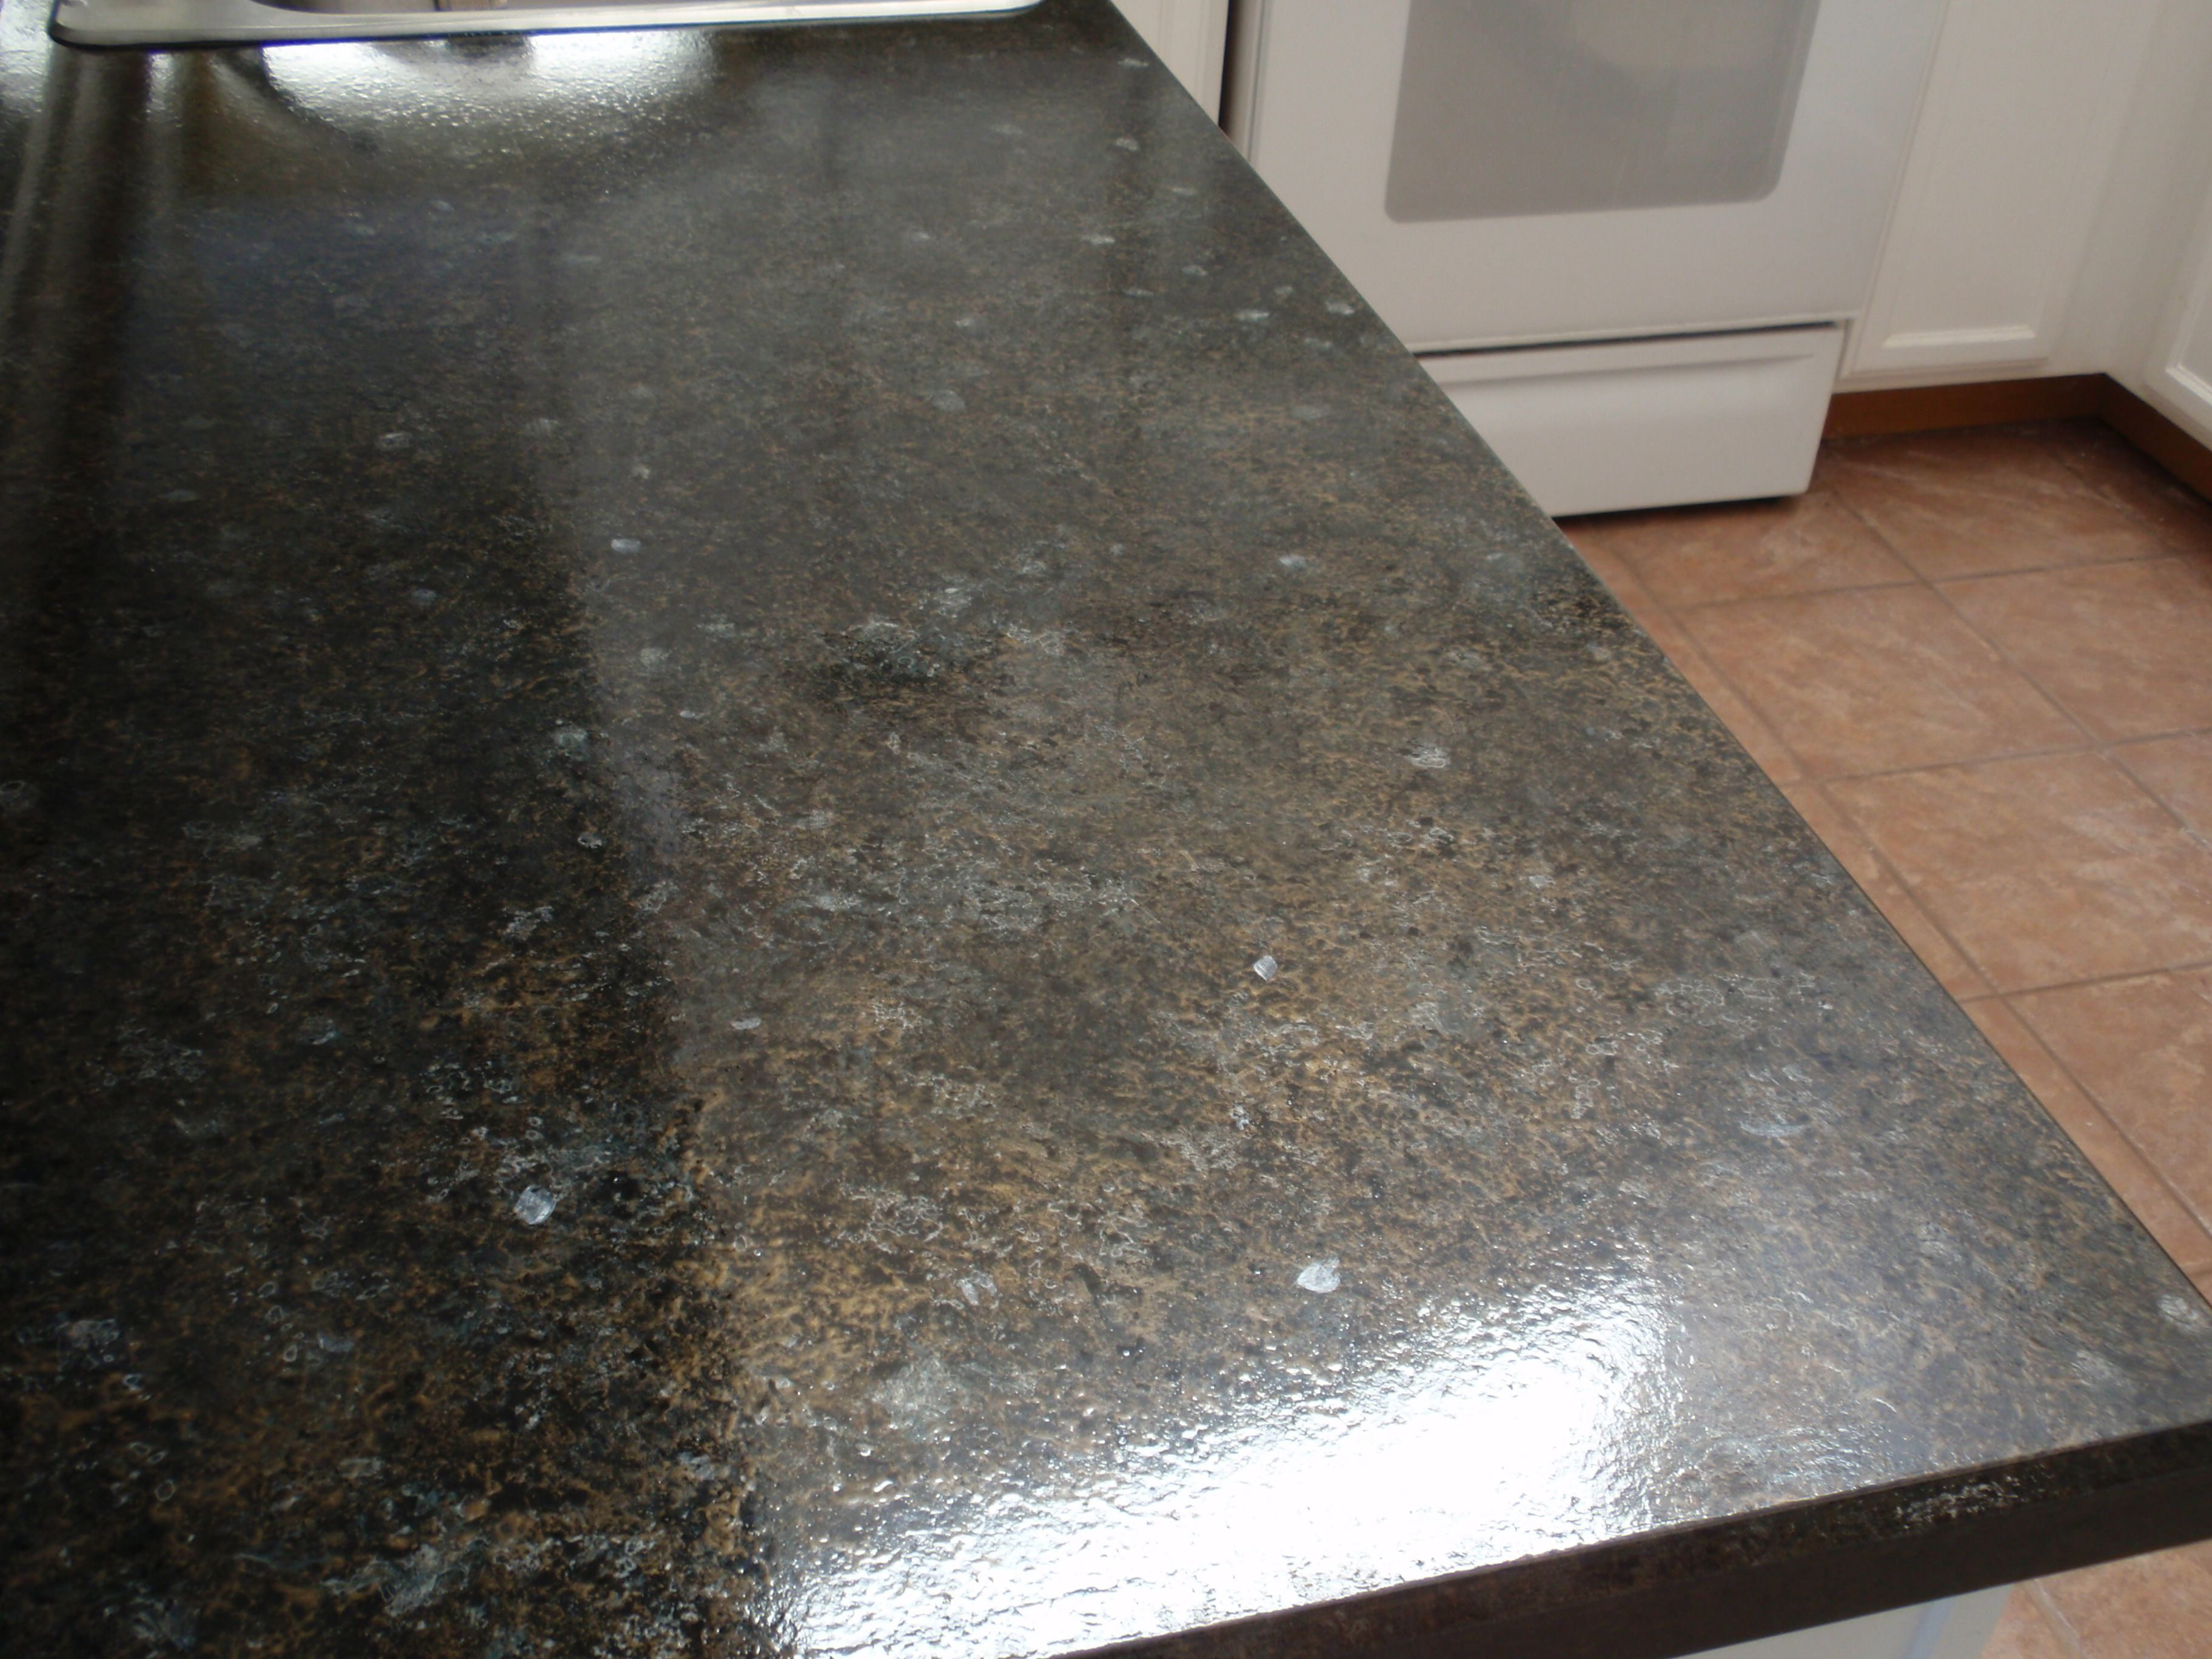 Granite Paint For Countertop Goes Over Old Formica